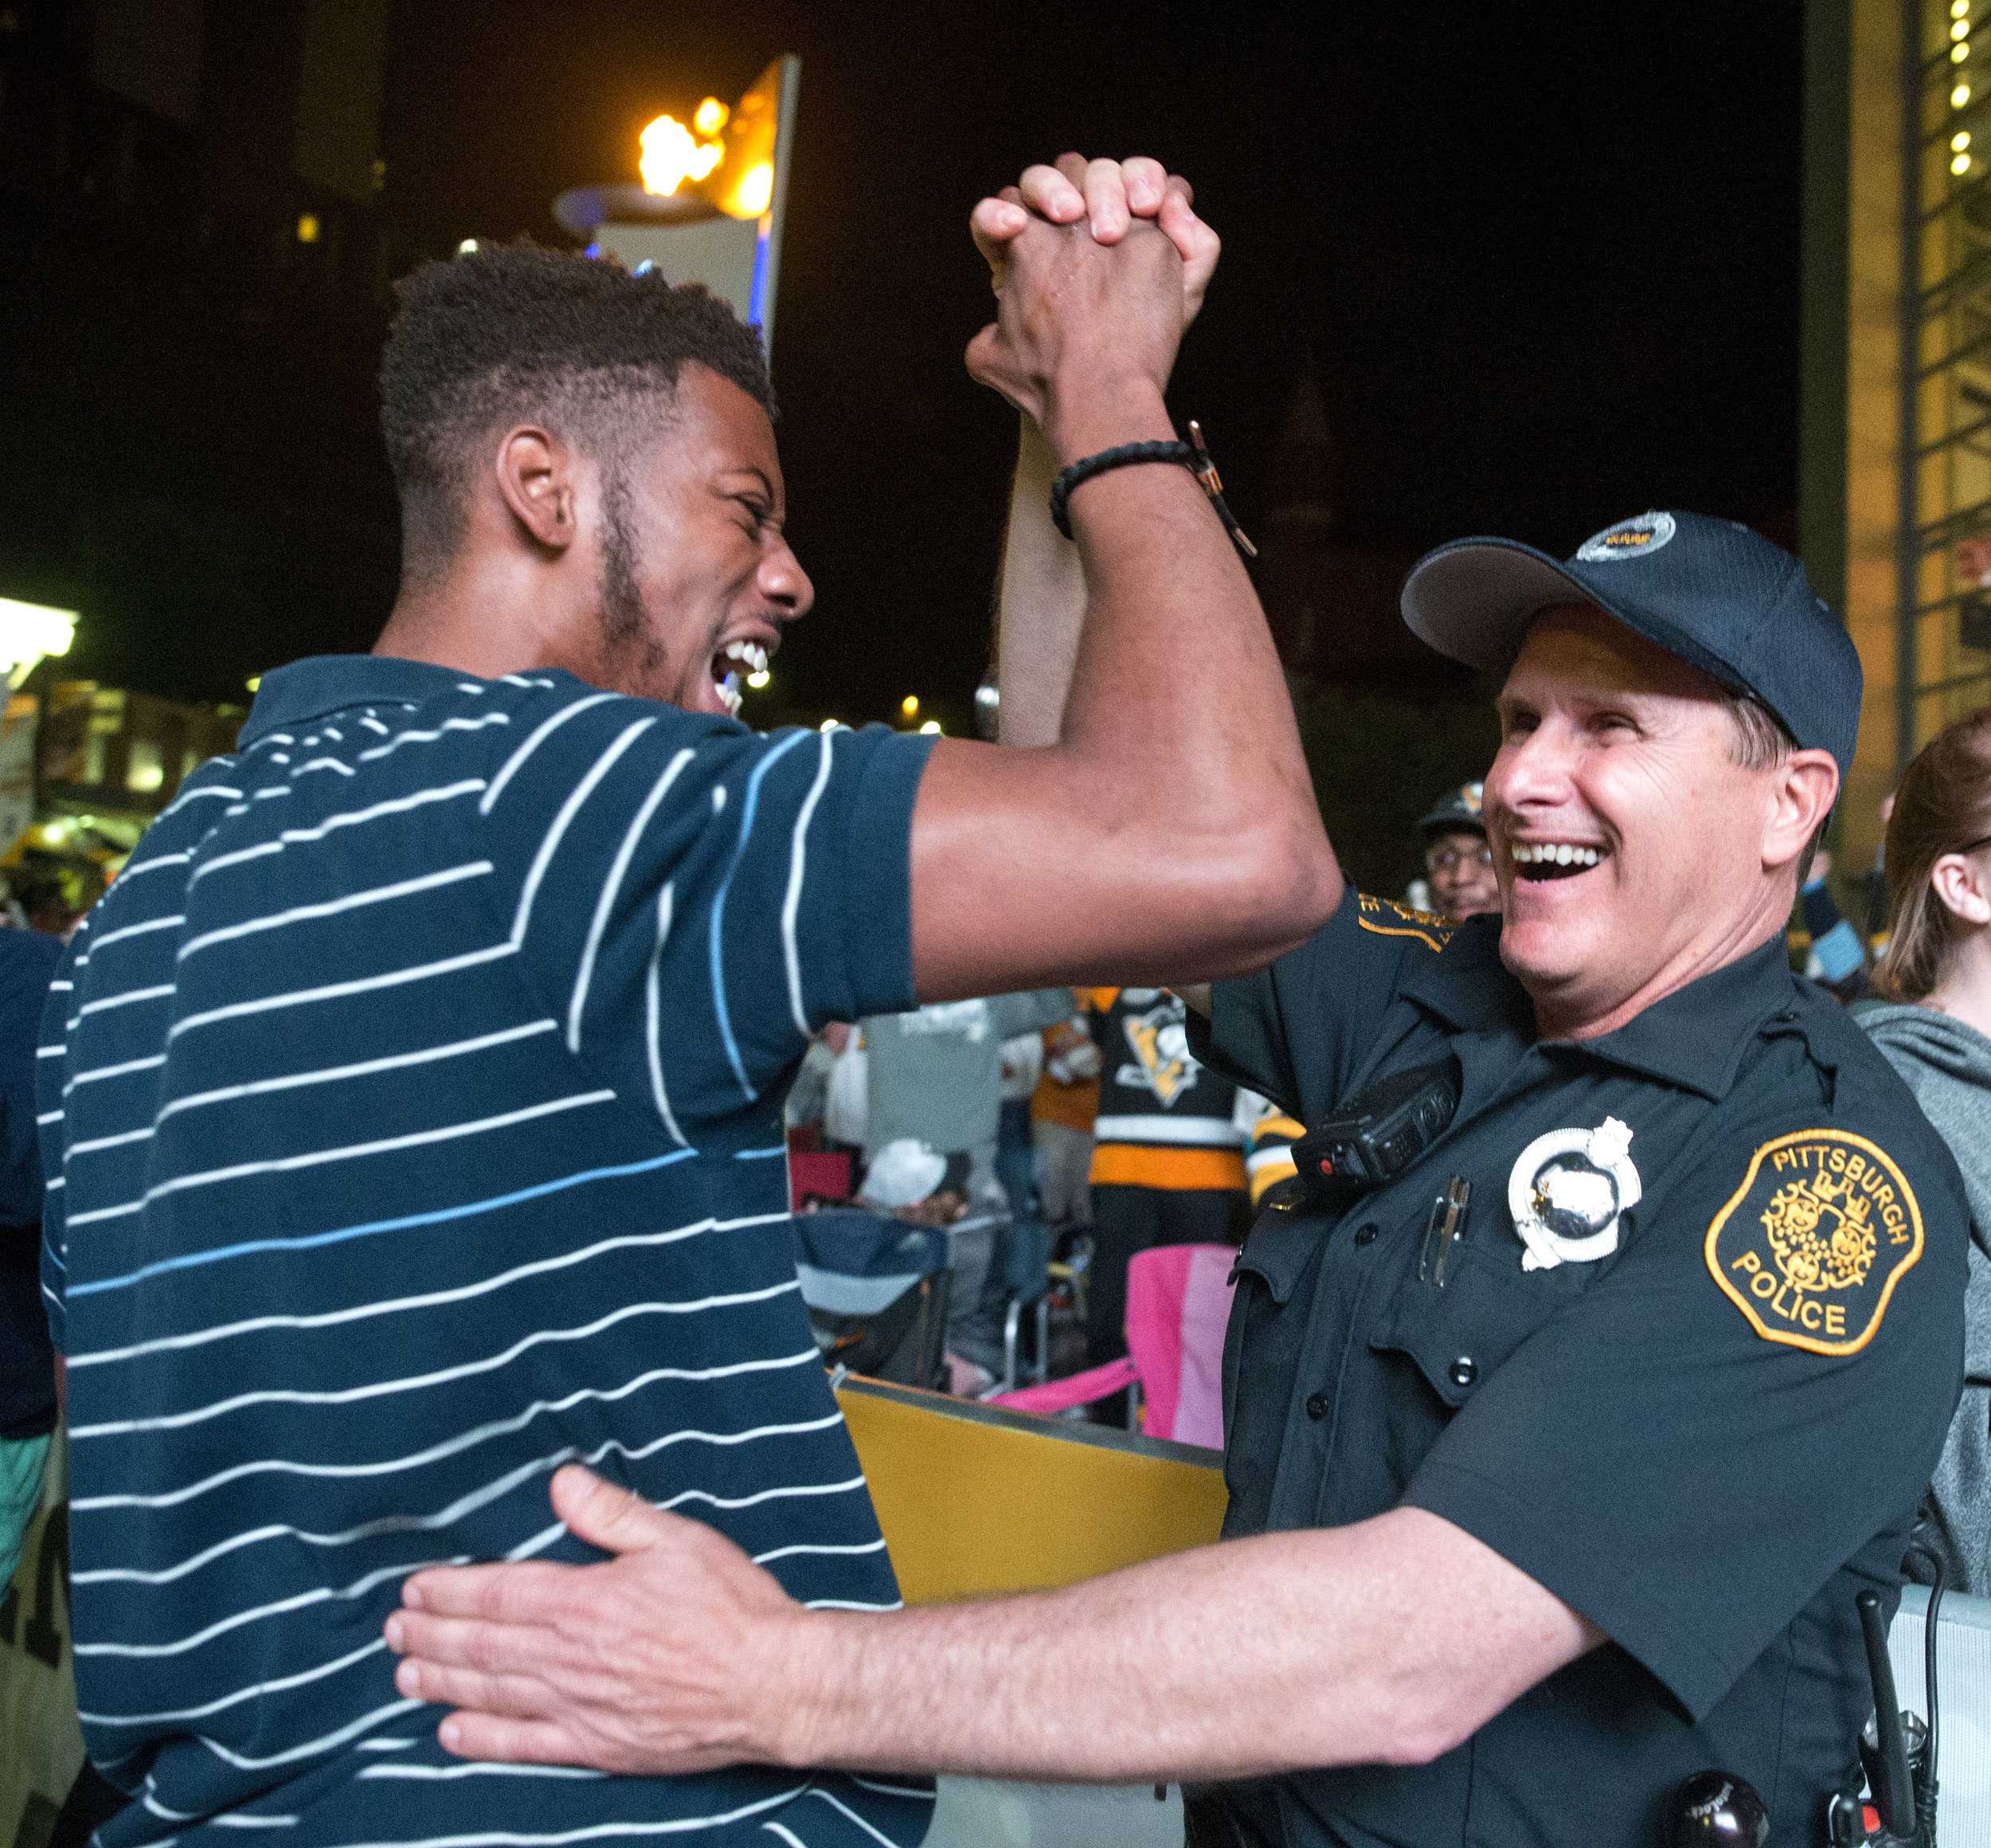 Demtrius Carrington, of Baldwin, celebrates with officer Mike Rosato, of Pittsburgh, after the Penguins scored and lead the game 4-1 against the Predators during Game 2 of the Stanley Cup Finals on Wednesday, May 31, 2017 at PPG Paints Arena.